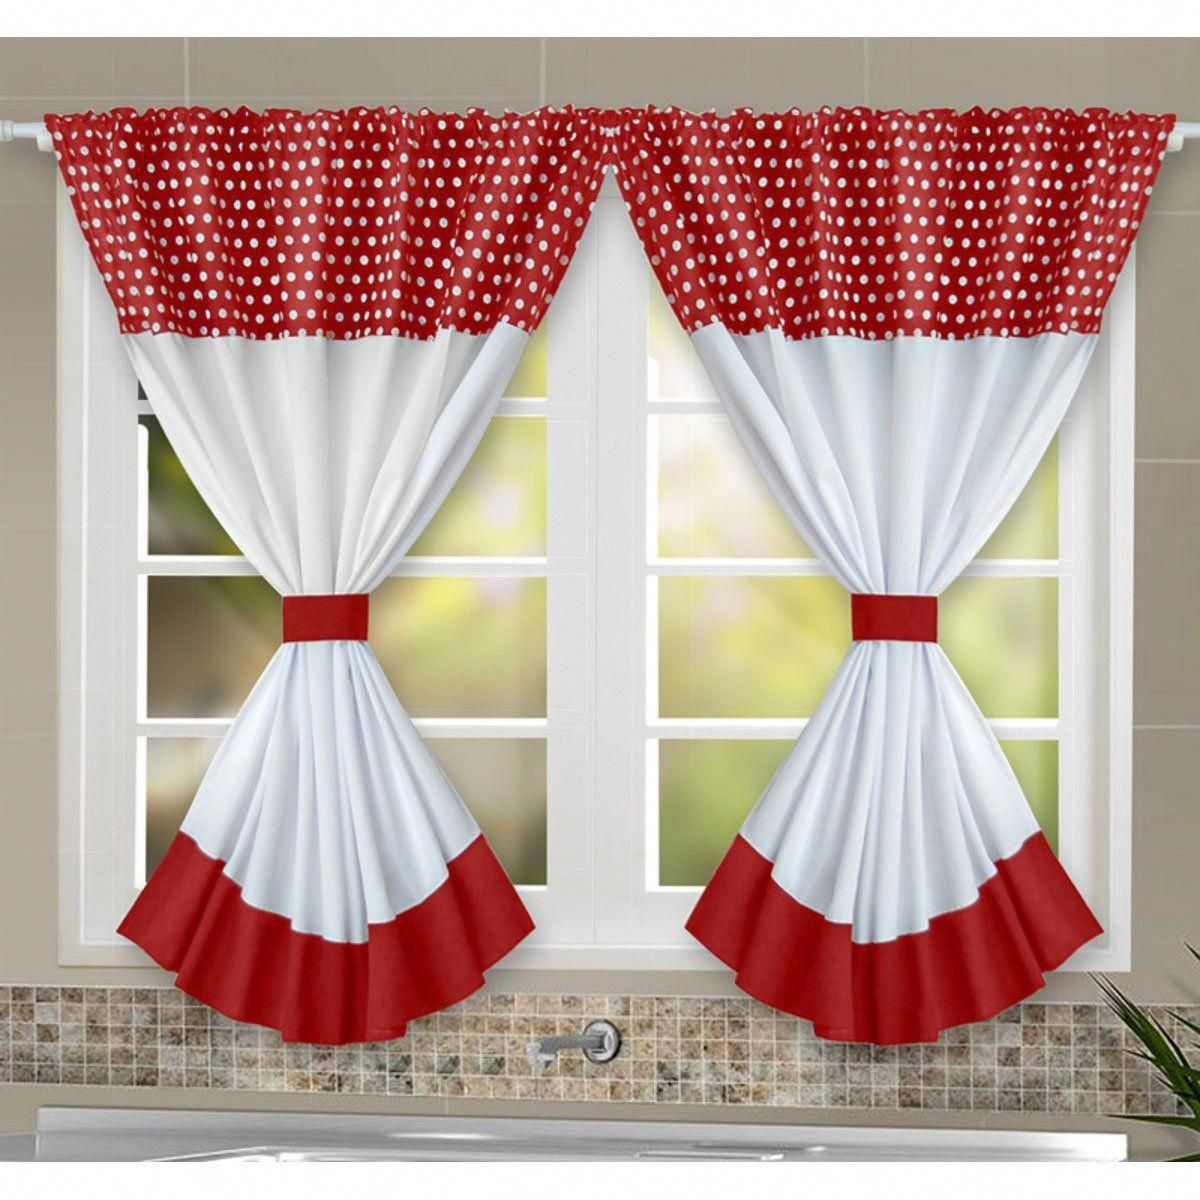 10 Ideas For A Garden Decoration In 2020 Home Curtains Curtain